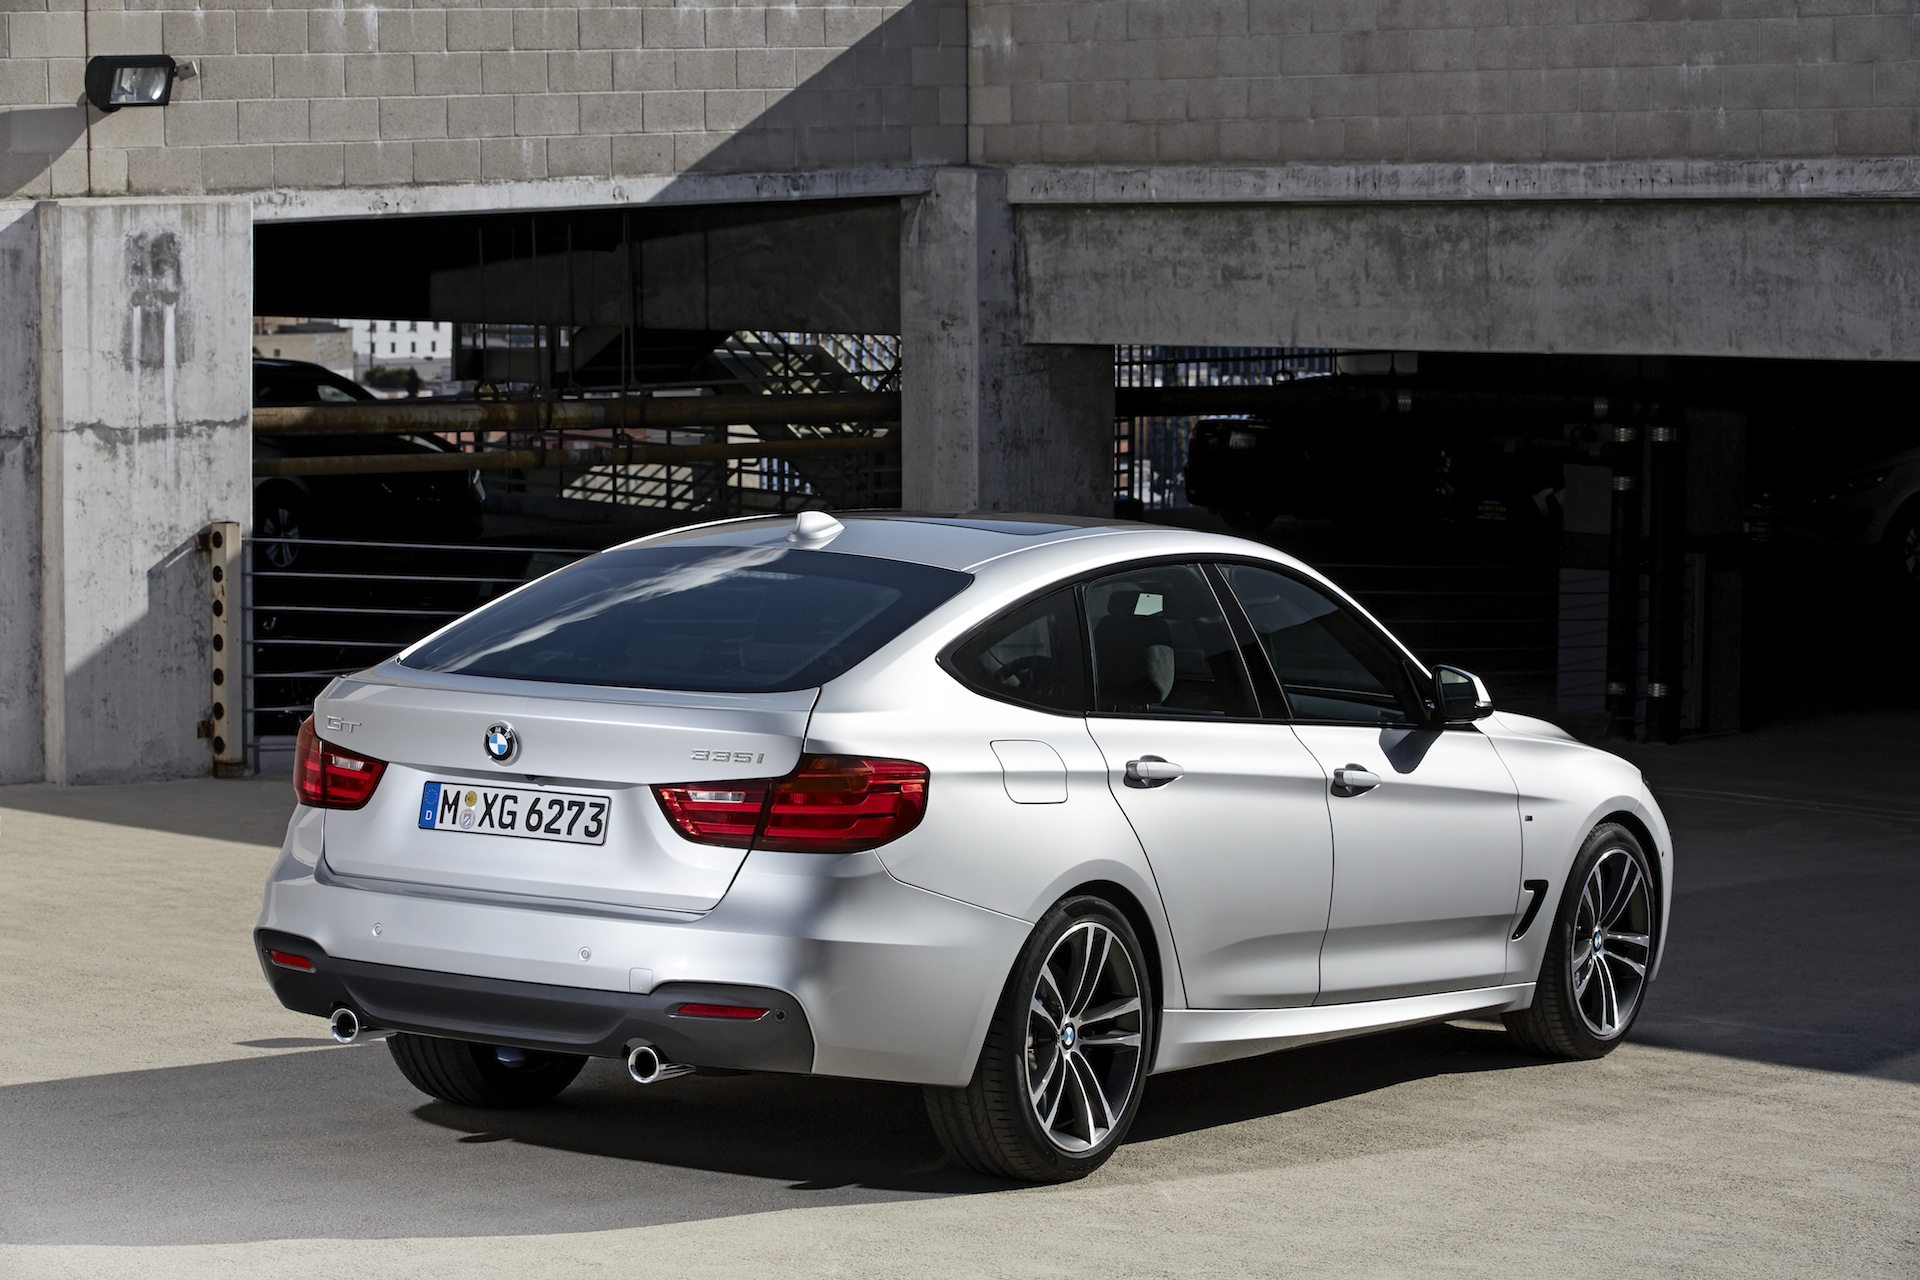 BMW 3-Series GT. Of course, the images here are of an M-Sport bodied model,